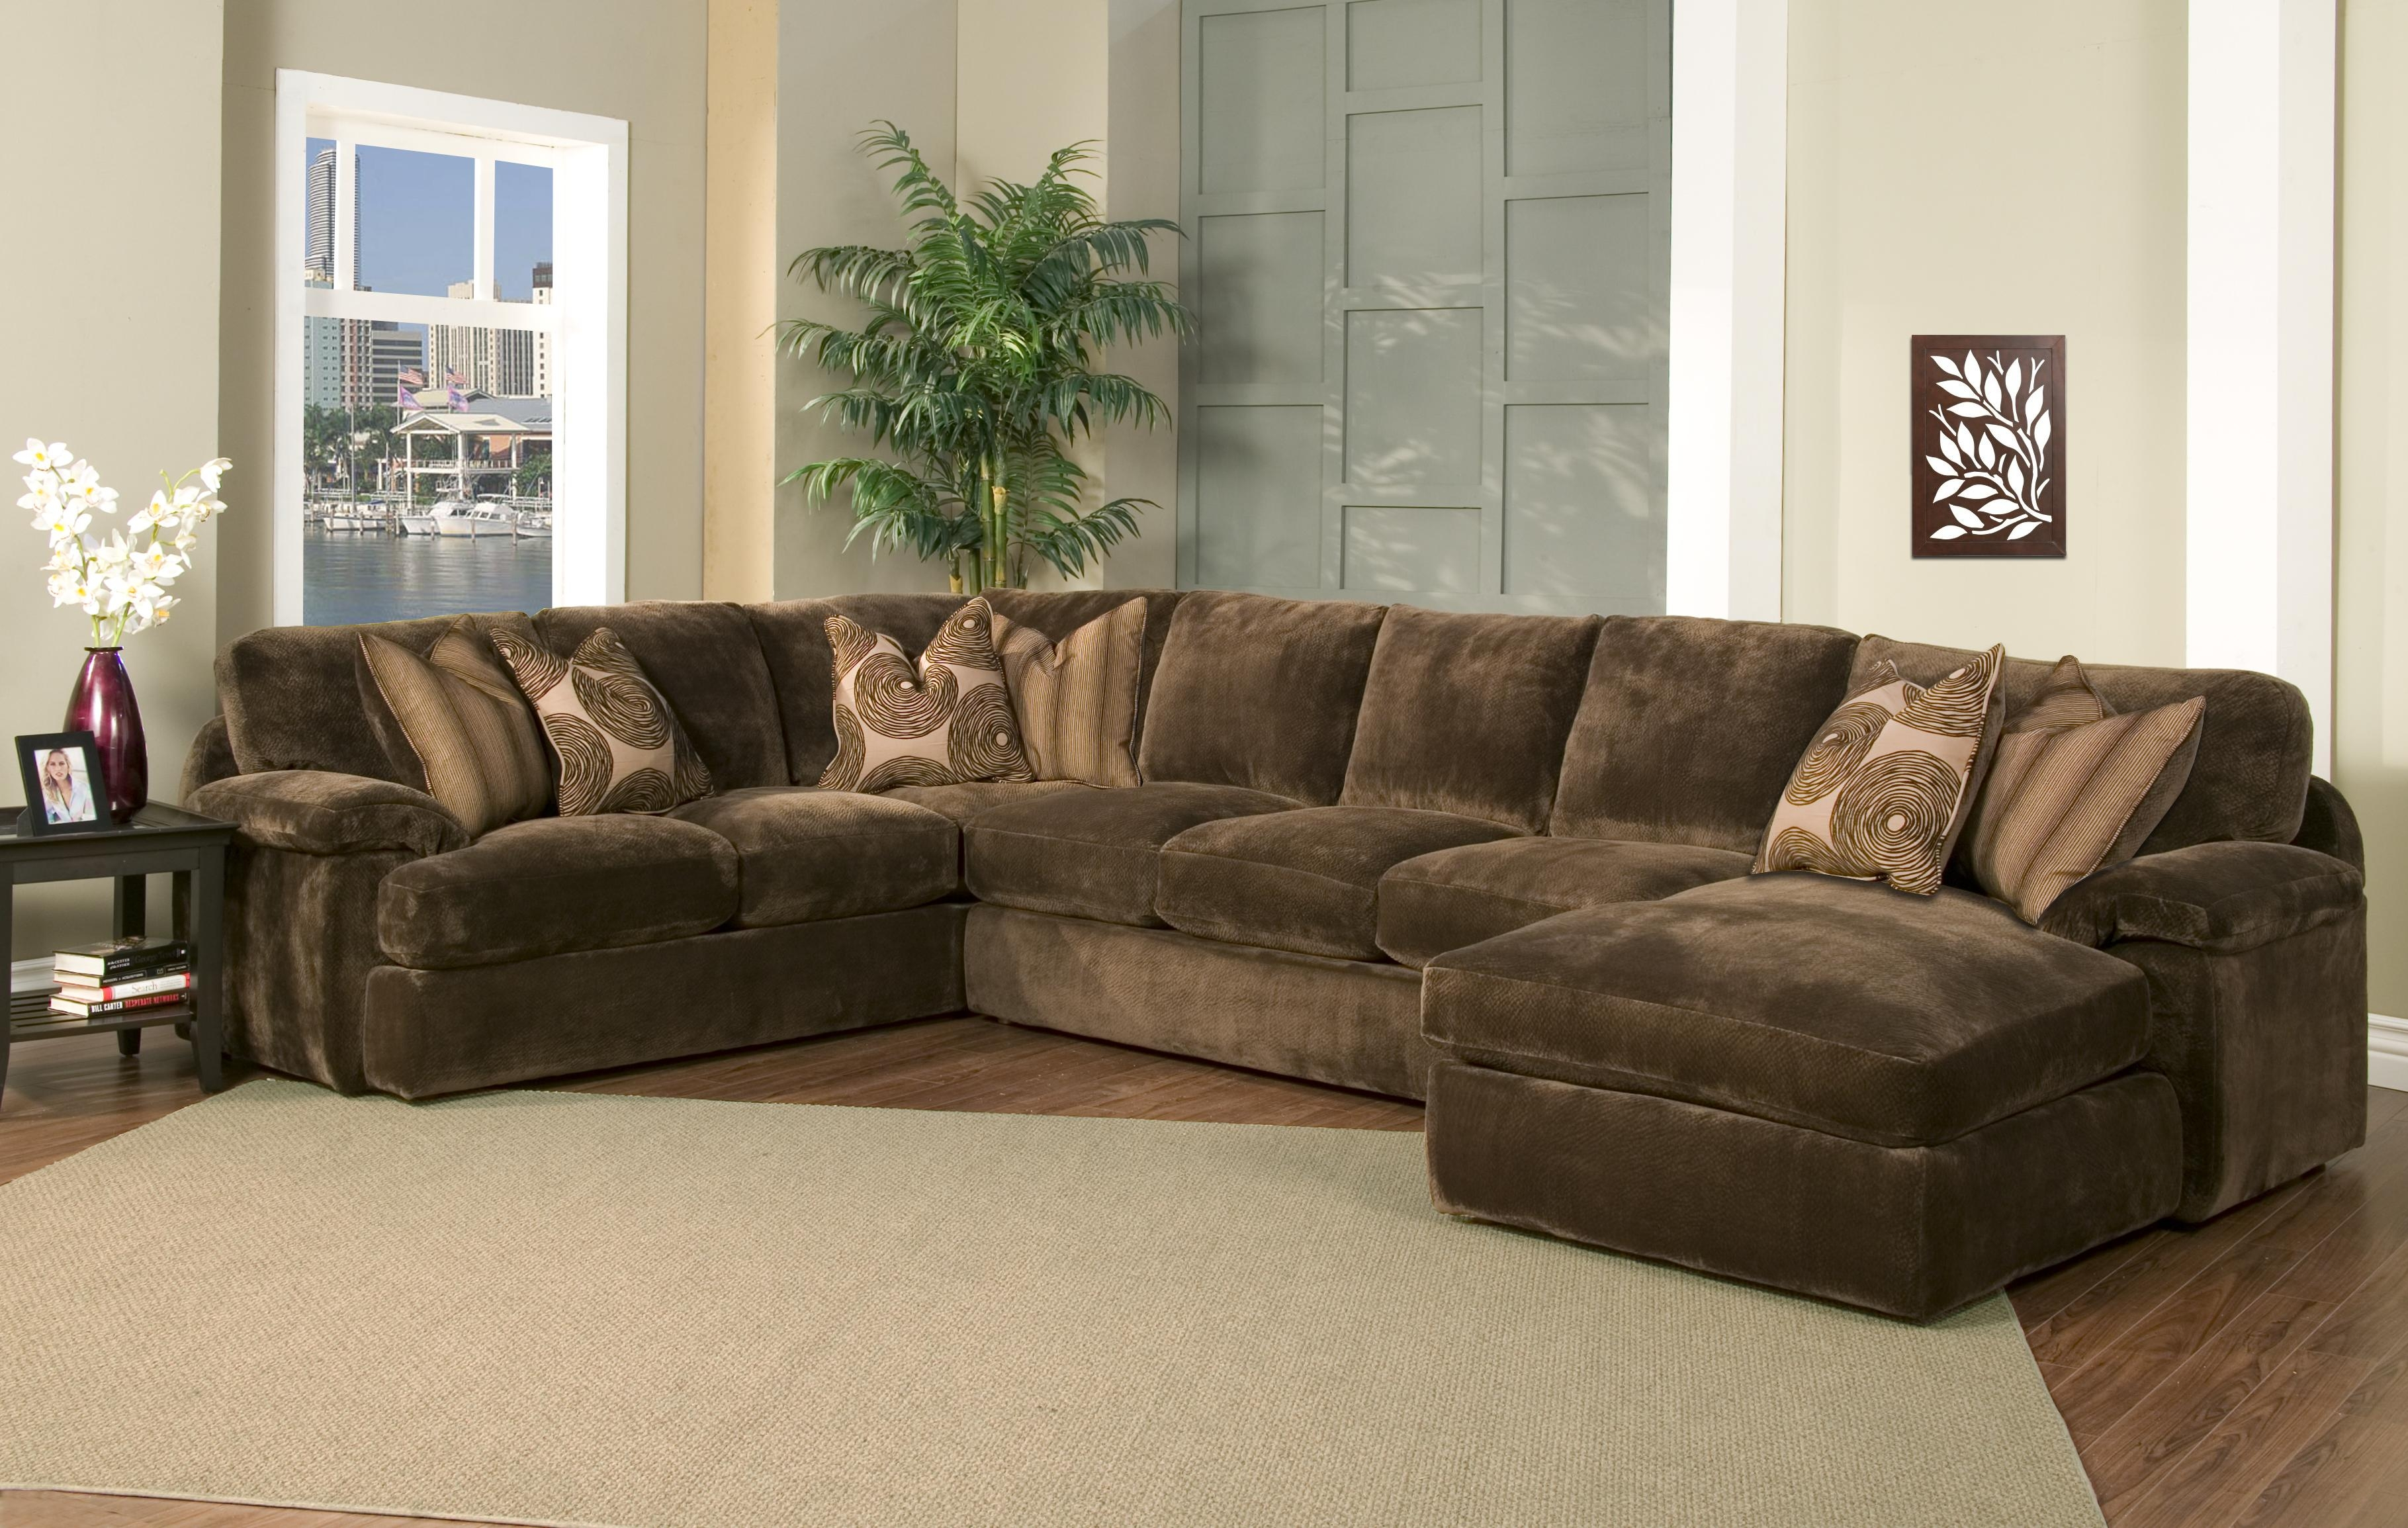 15 s Goose Down Sectional Sofa